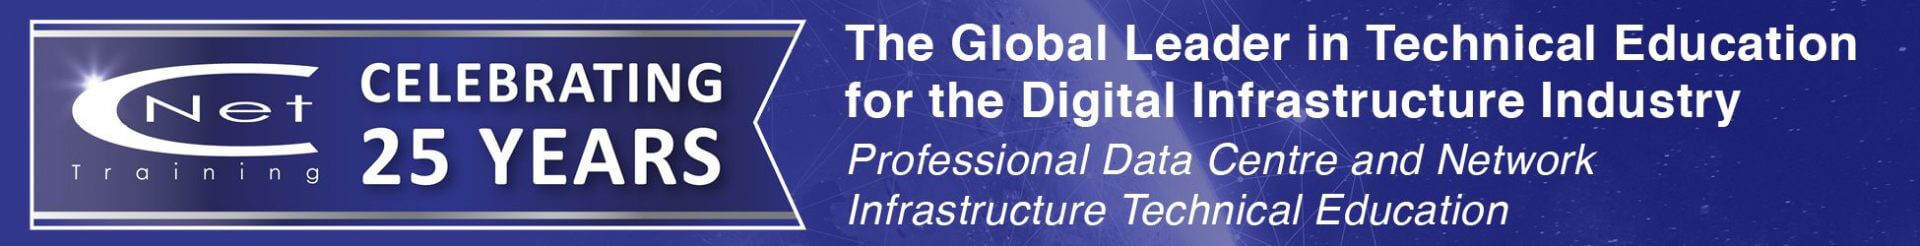 CNet Training is the Global Leader in Technical Education for the Digital Infrastructure Industry